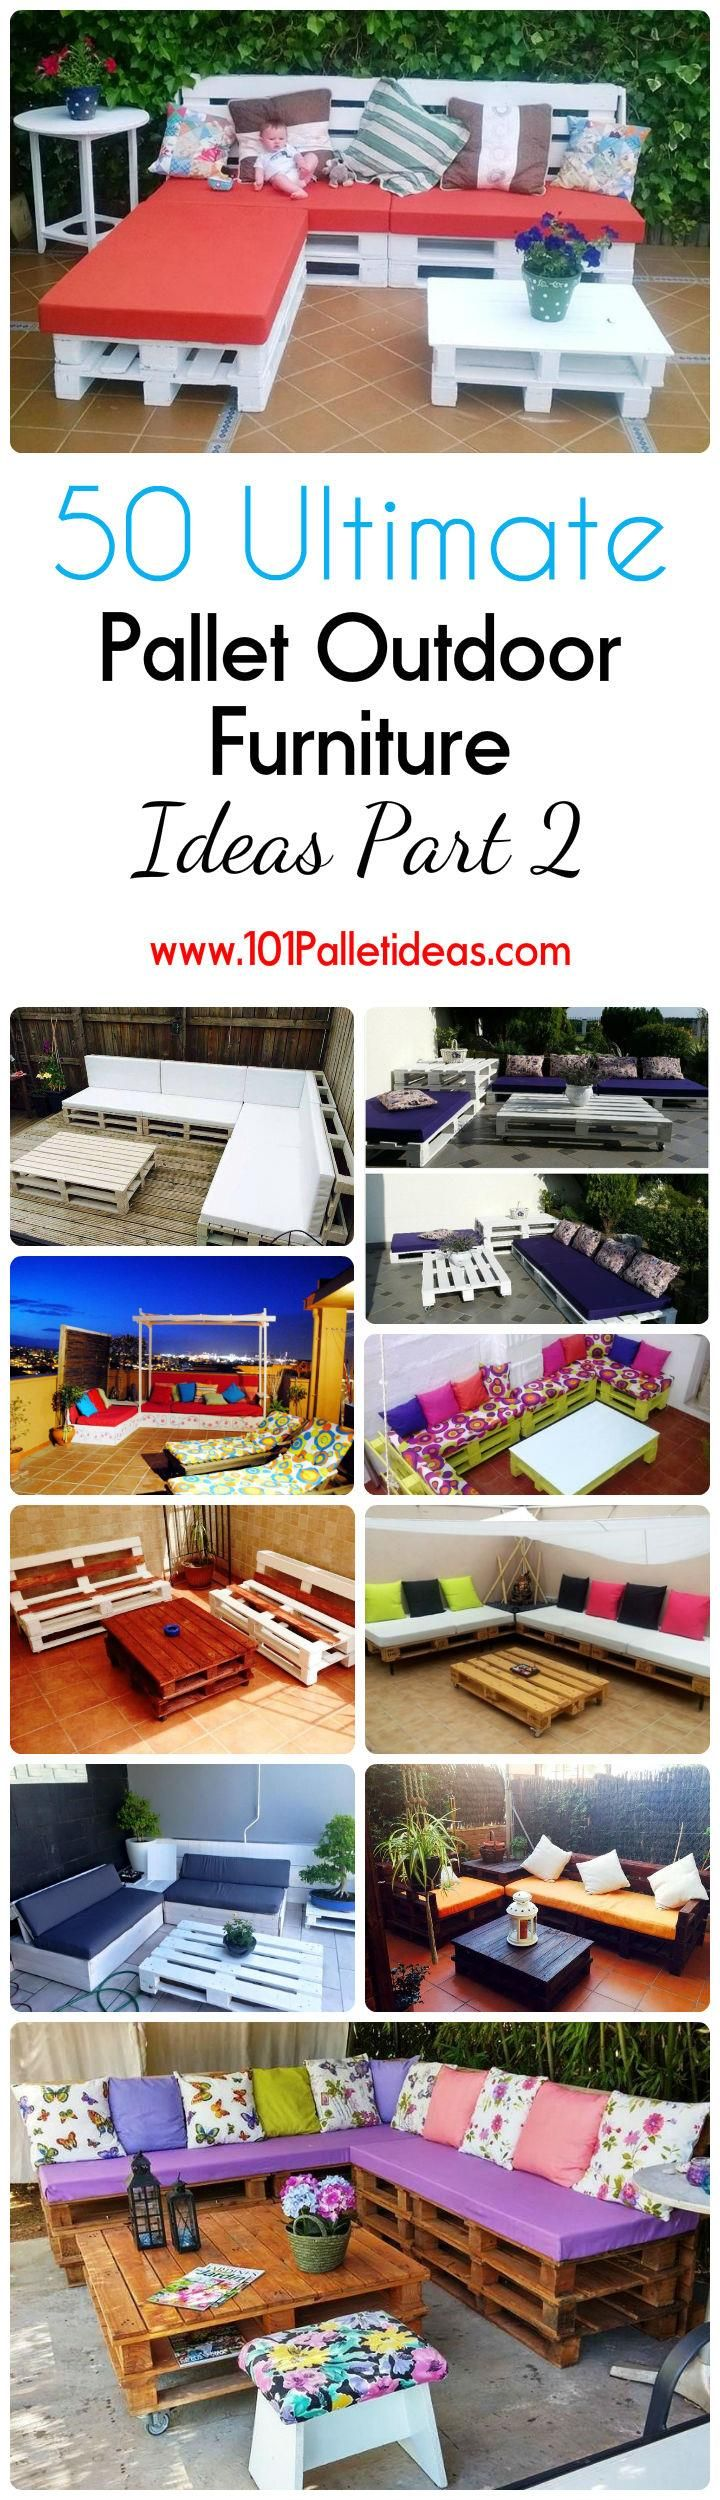 Ultimate Pallet Outdoor Furniture Ideas Pallet Ideas - 20 unique pieces of furniture made from recycled airplane parts